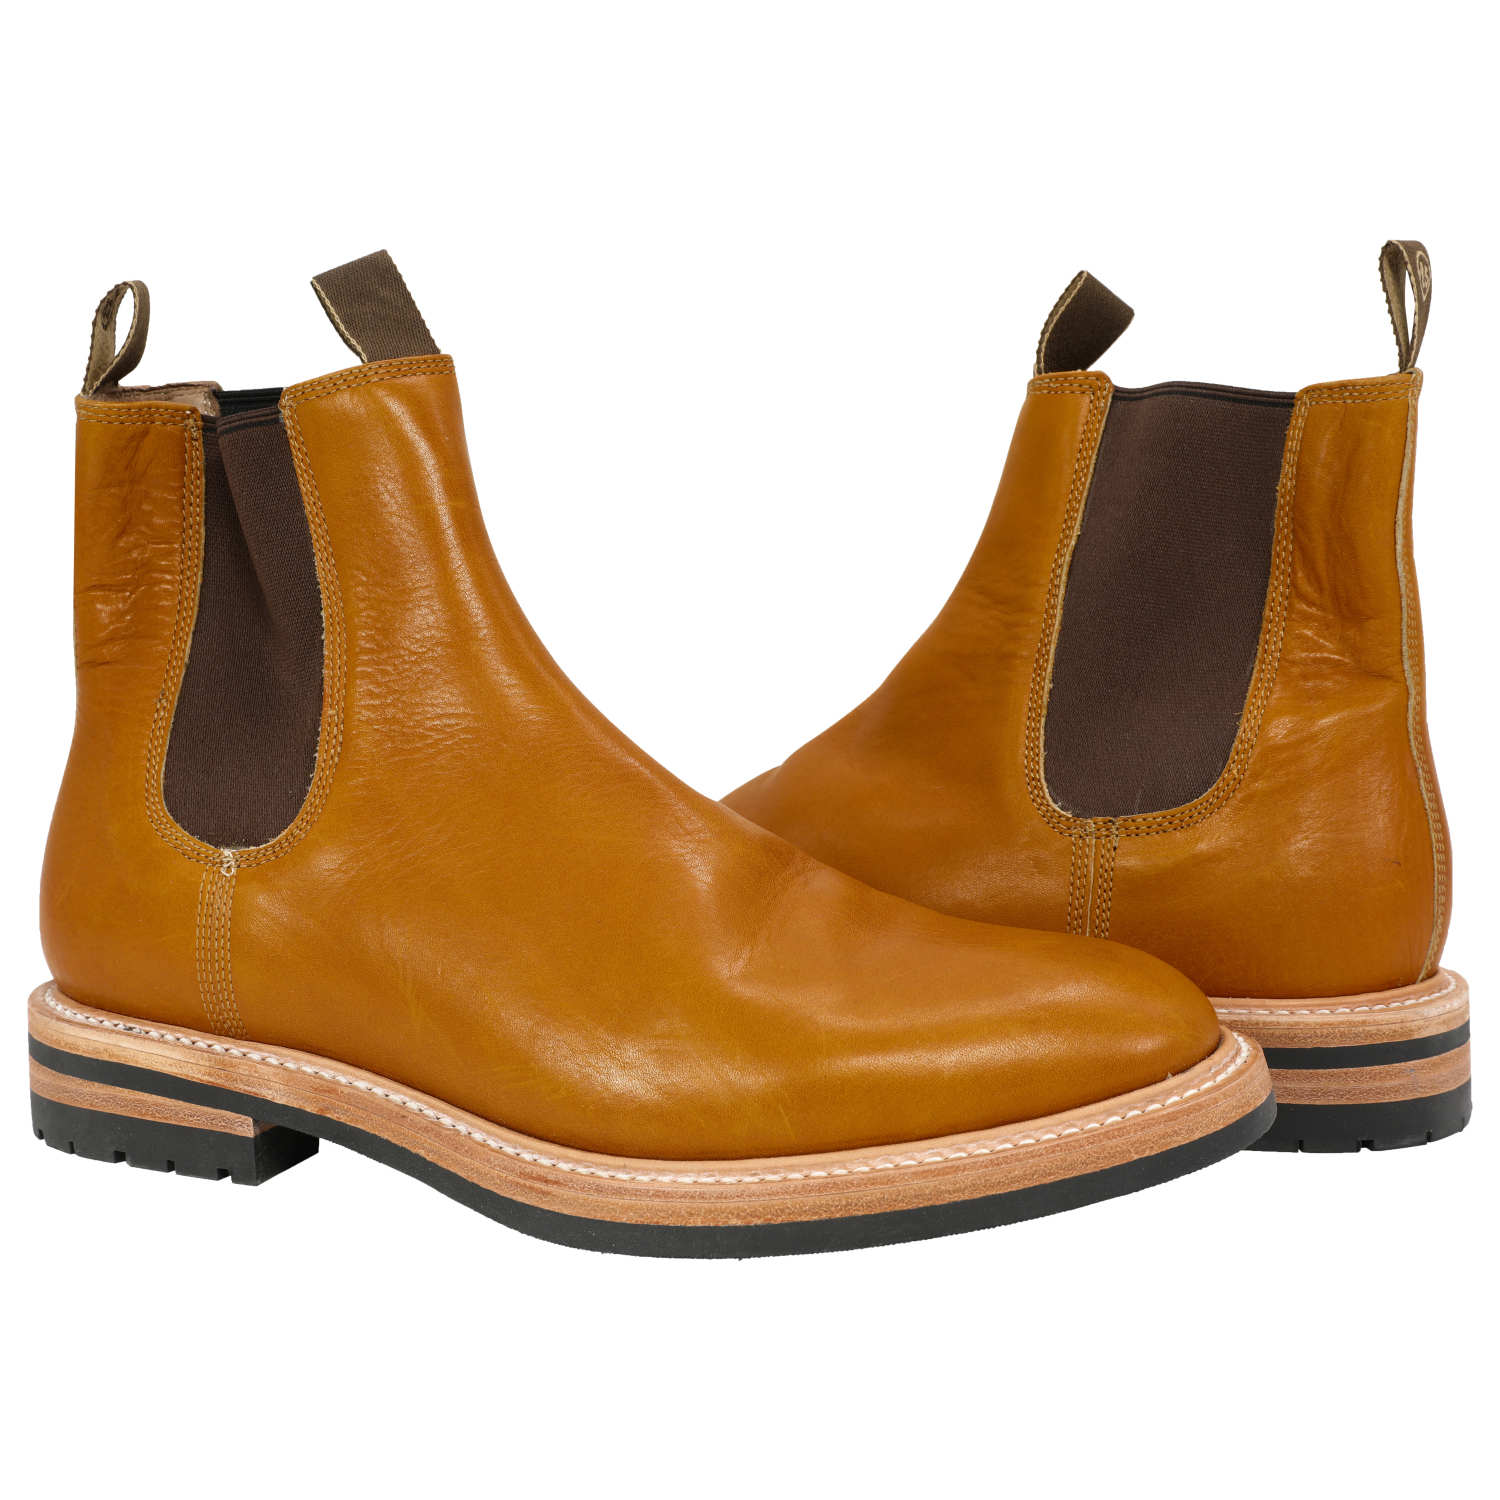 The Ranch Boot